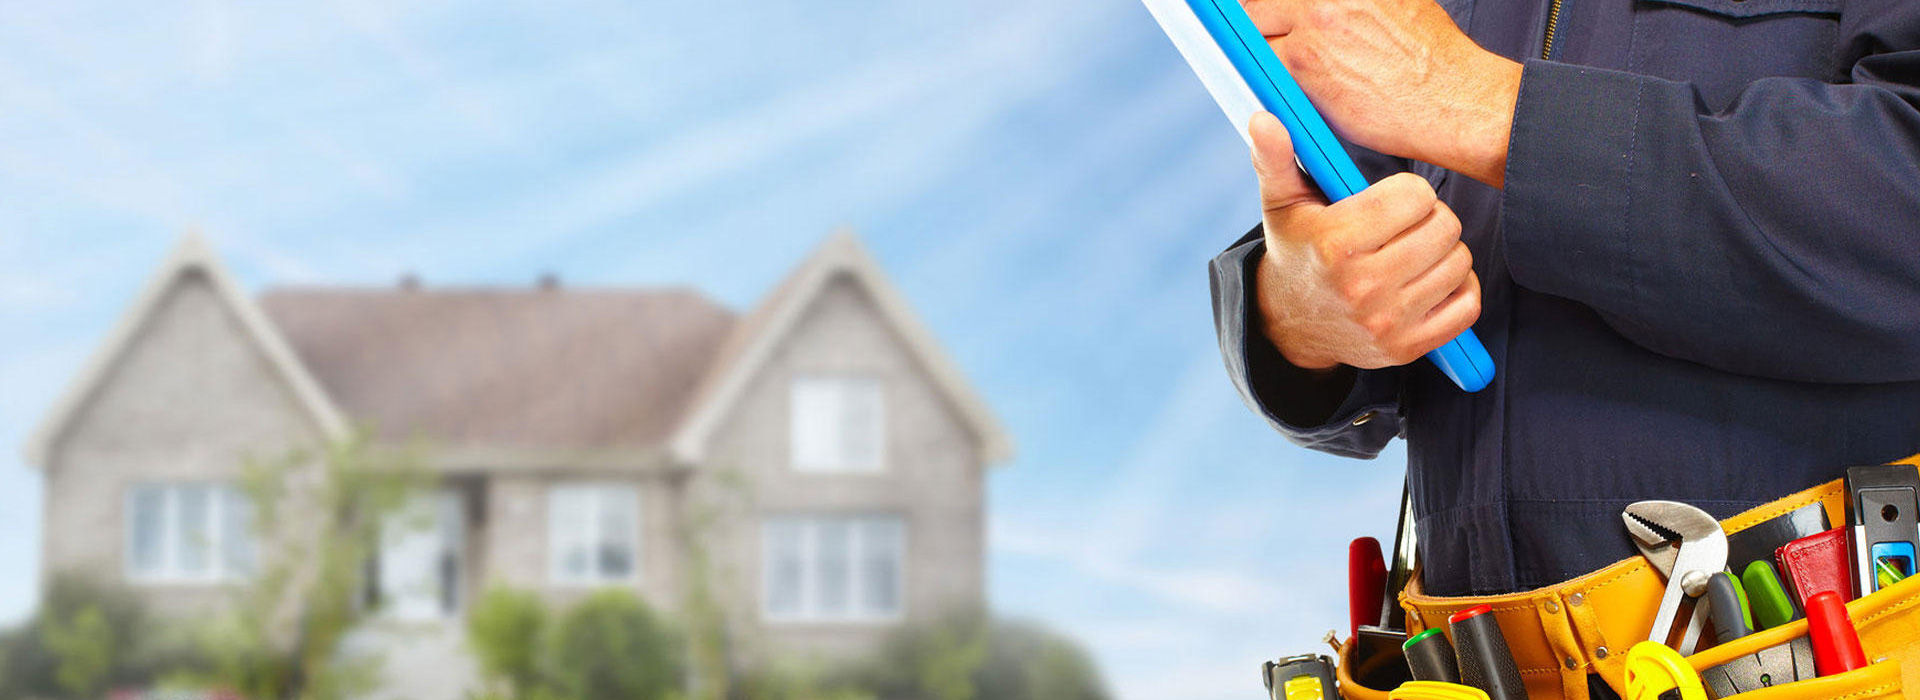 Home Improvement Contractor And Repair Services In